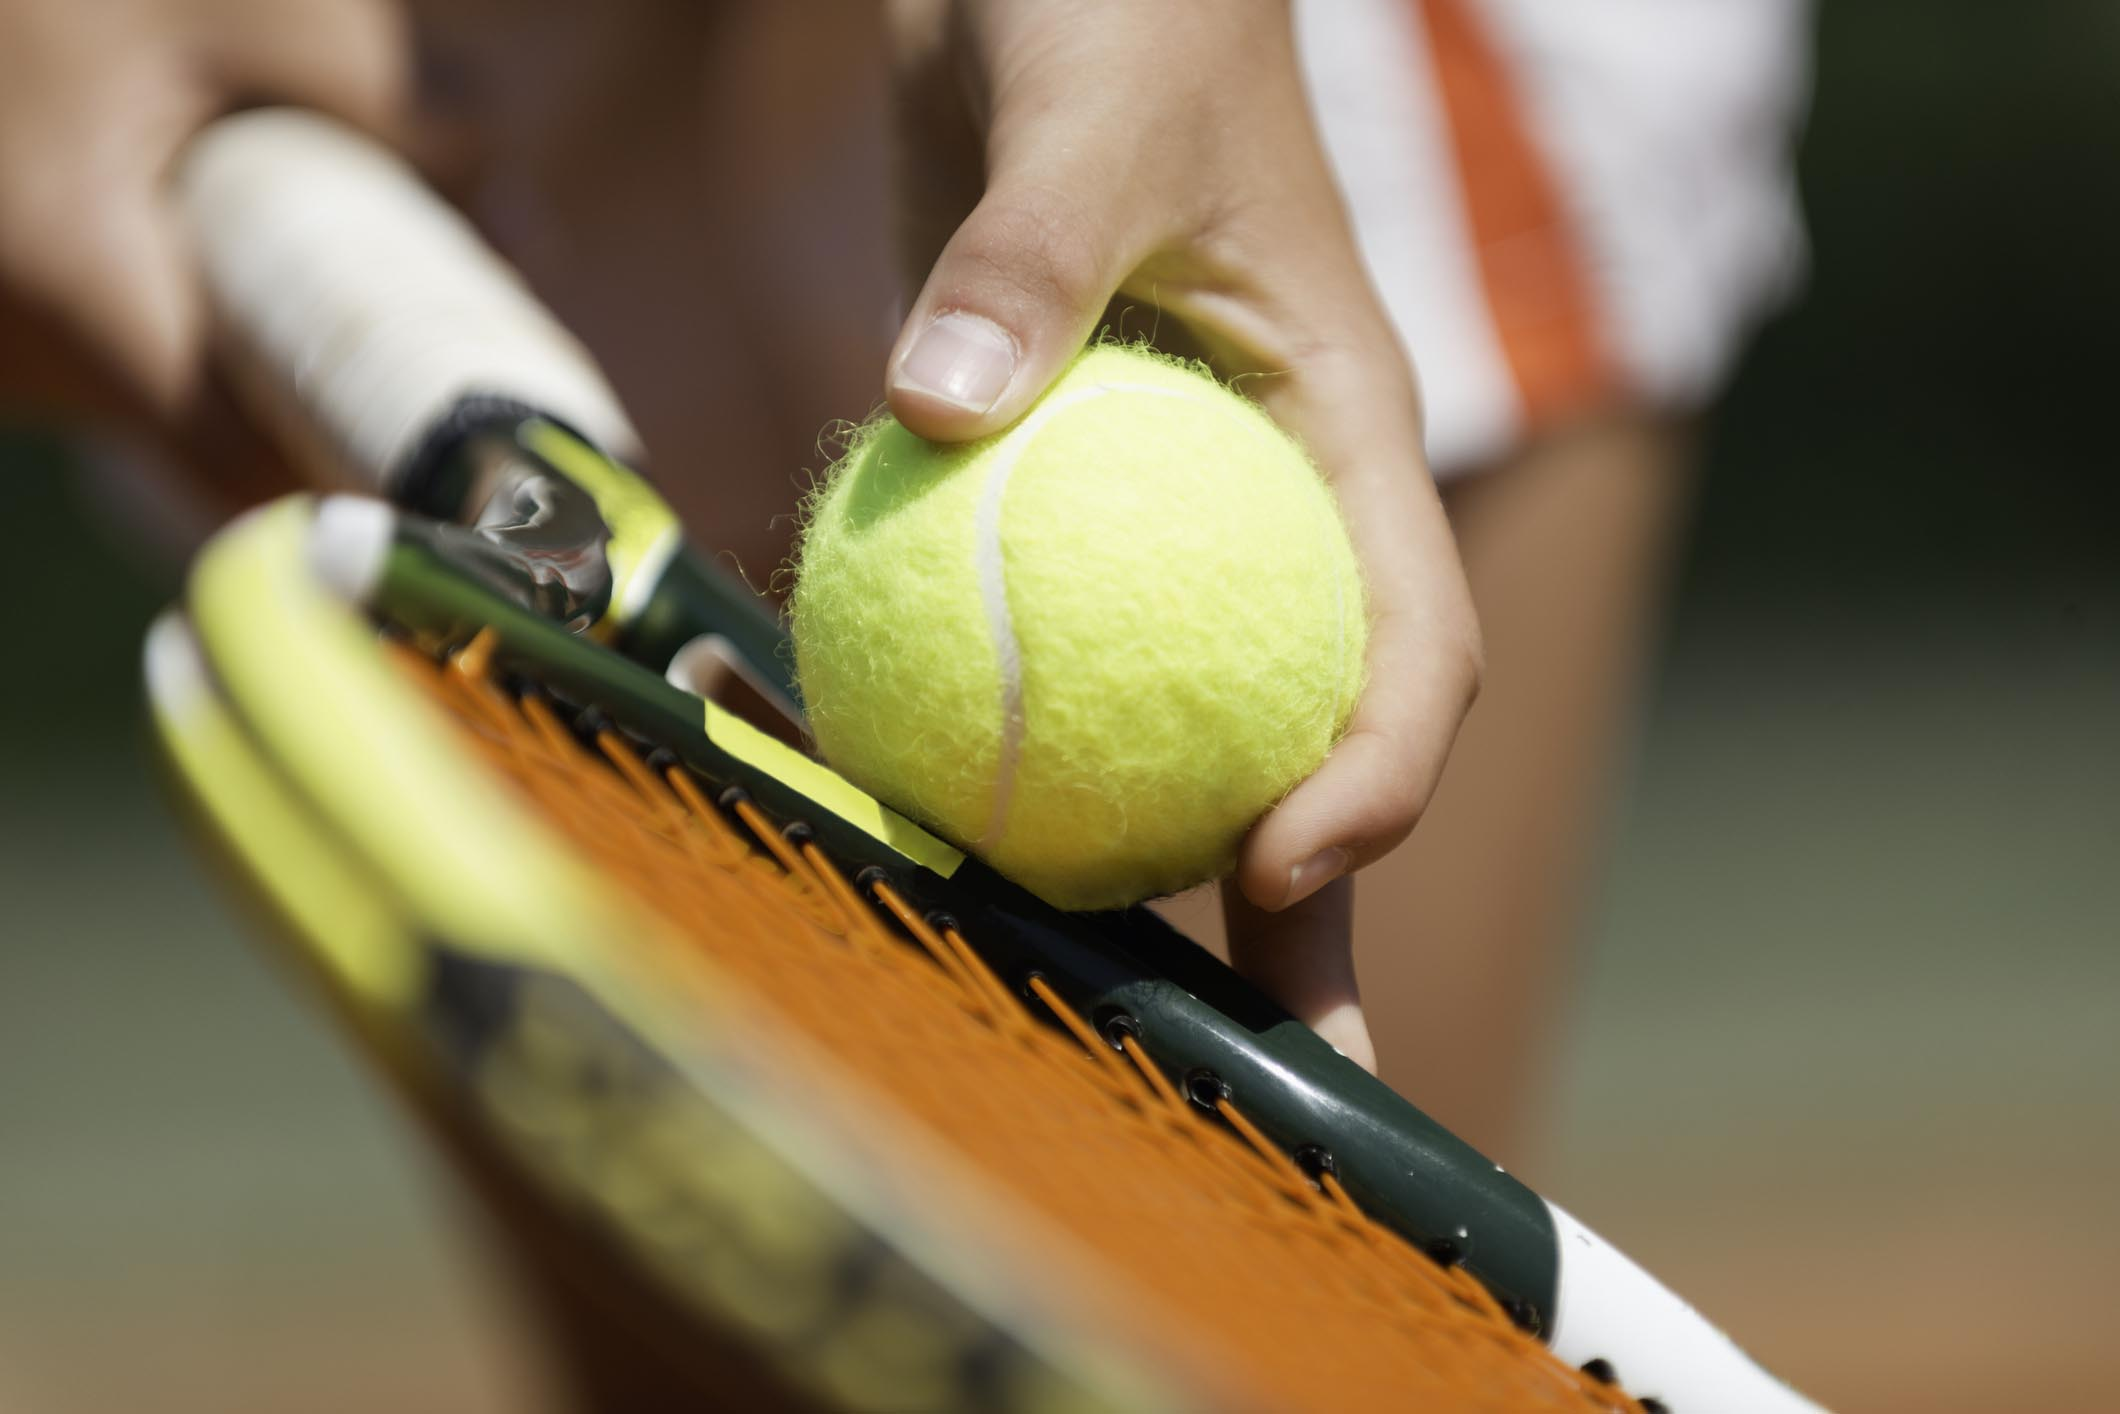 Tennis player holding ball against racket, just about to serve